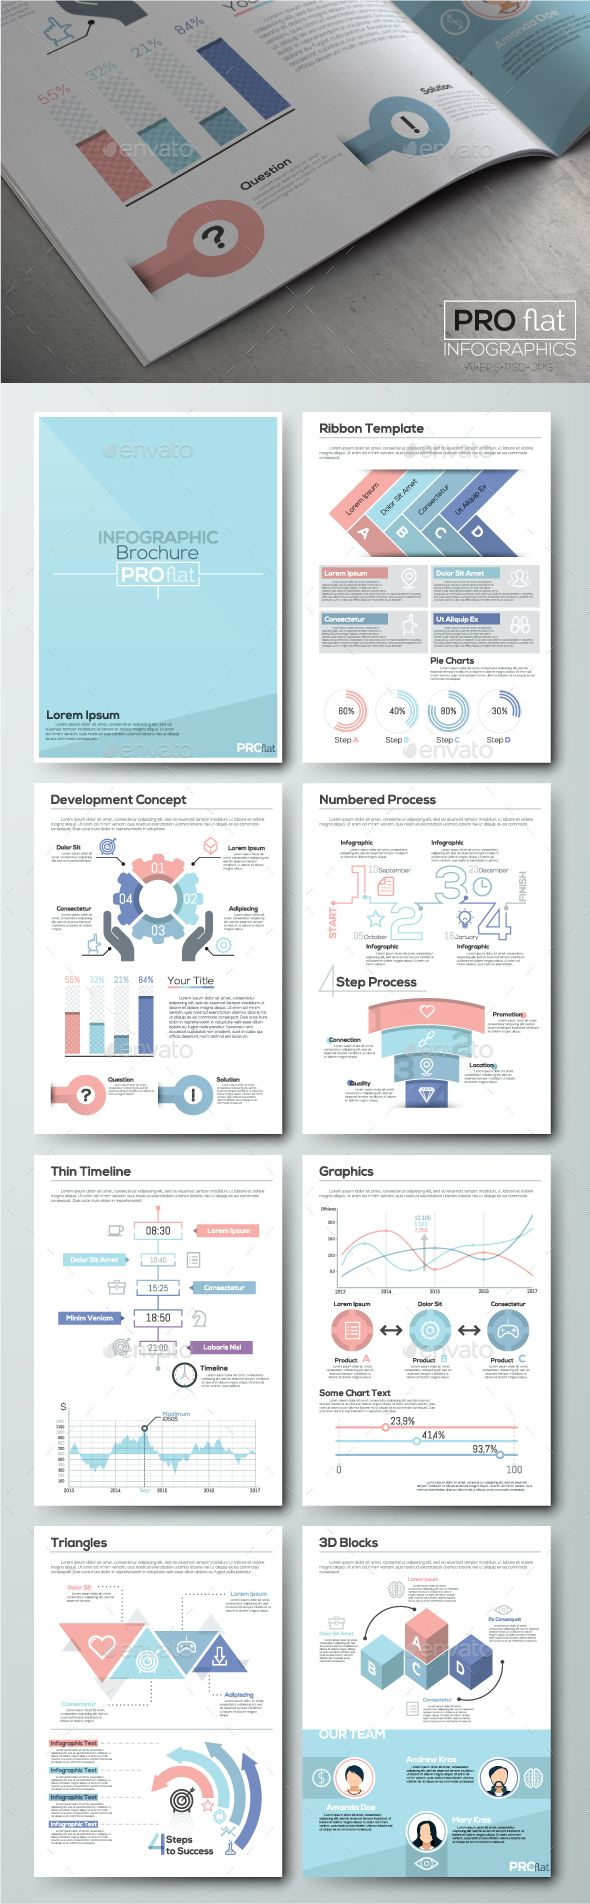 Pro Flat Infographic Brochure Template PSD, Vector EPS, AI Illustrator. Download here: http://graphicriver.net/item/pro-flat-infographic-brochure-set-6/16414059?ref=ksioks